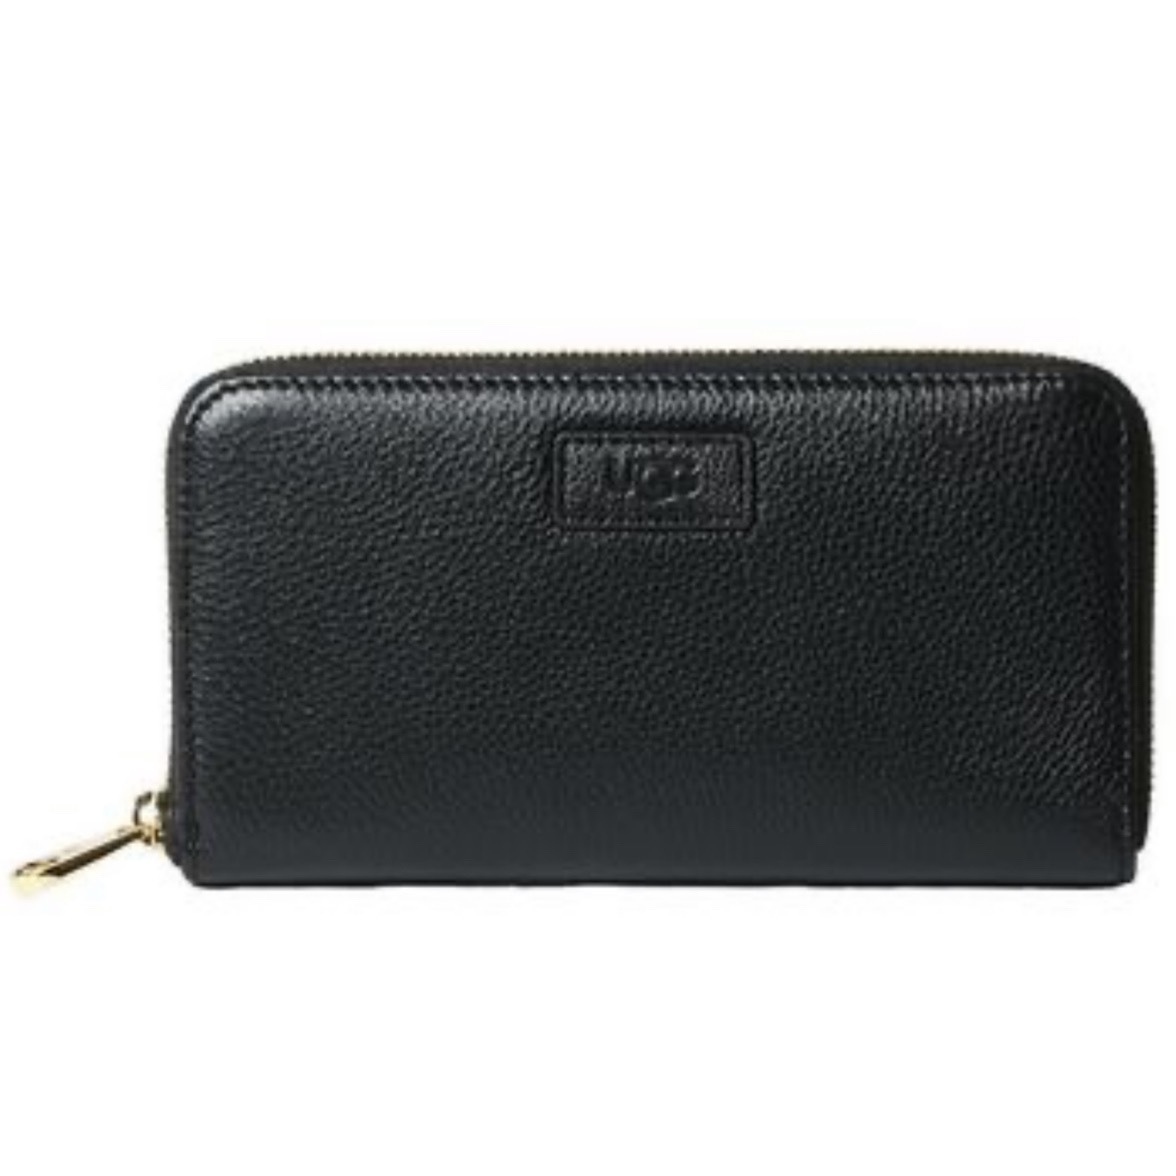 shop ugg australia wallets & card holders